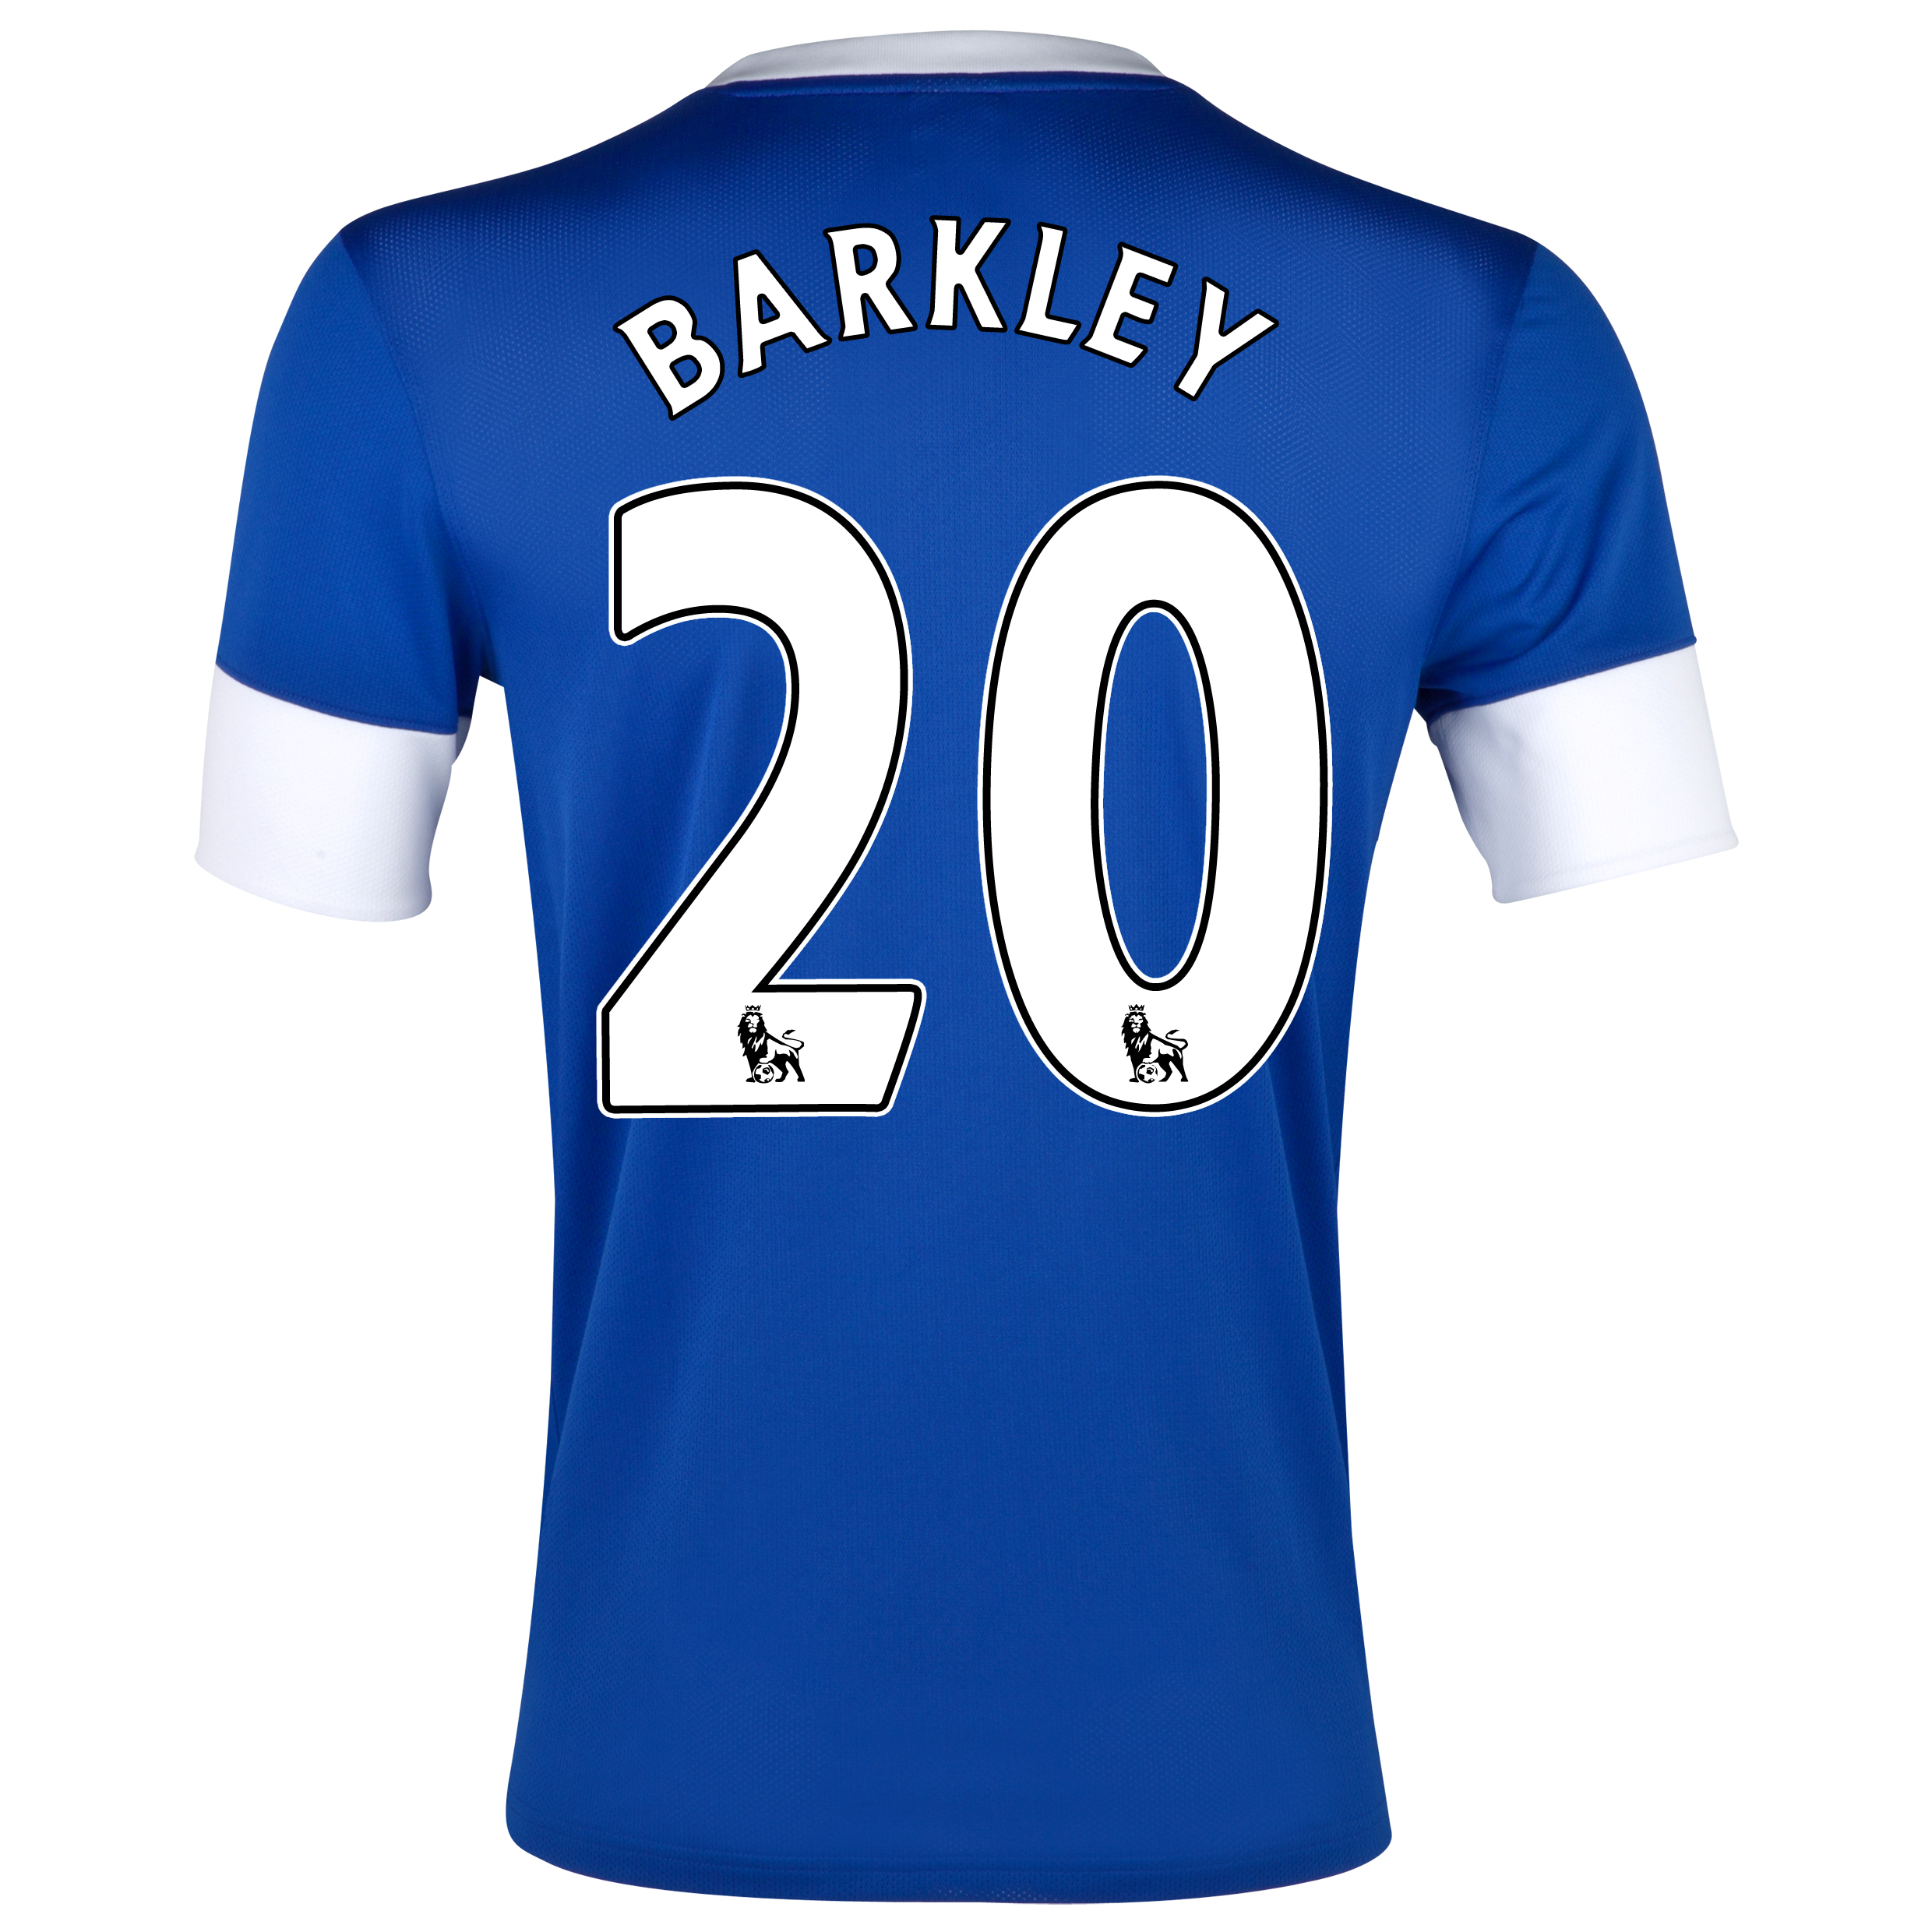 Everton Home Shirt 2012/13 with Barkley 20 printing